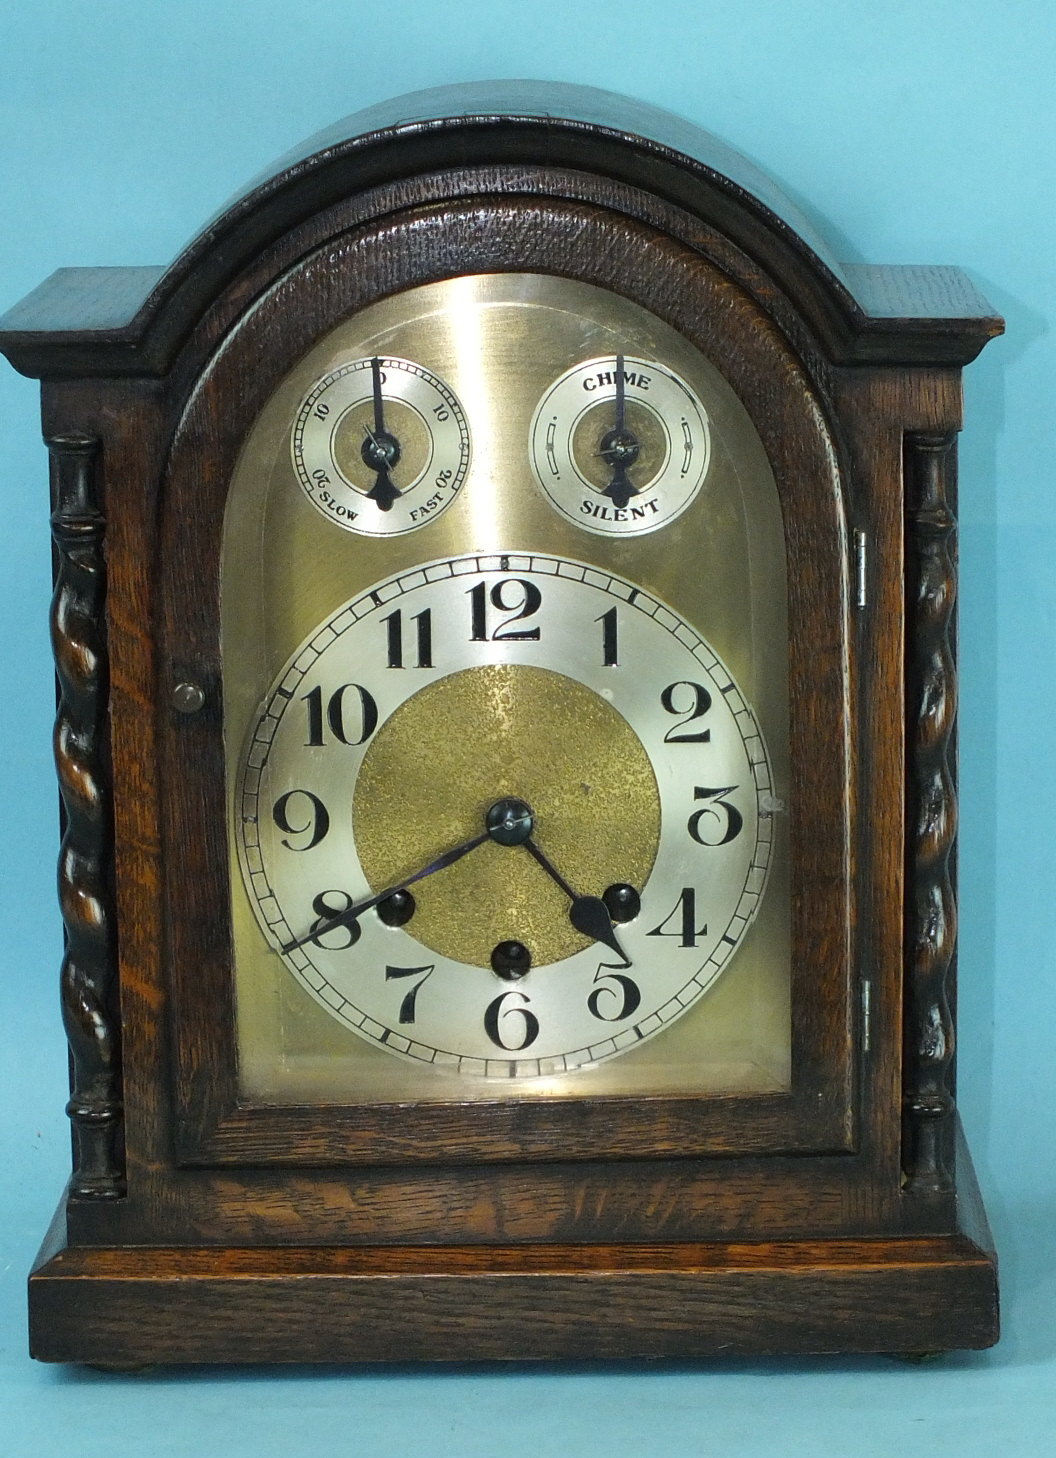 Lot 127 - A 20th century oak mantel clock, the dial with silvered chapter ring, chime/silent and slow/fast